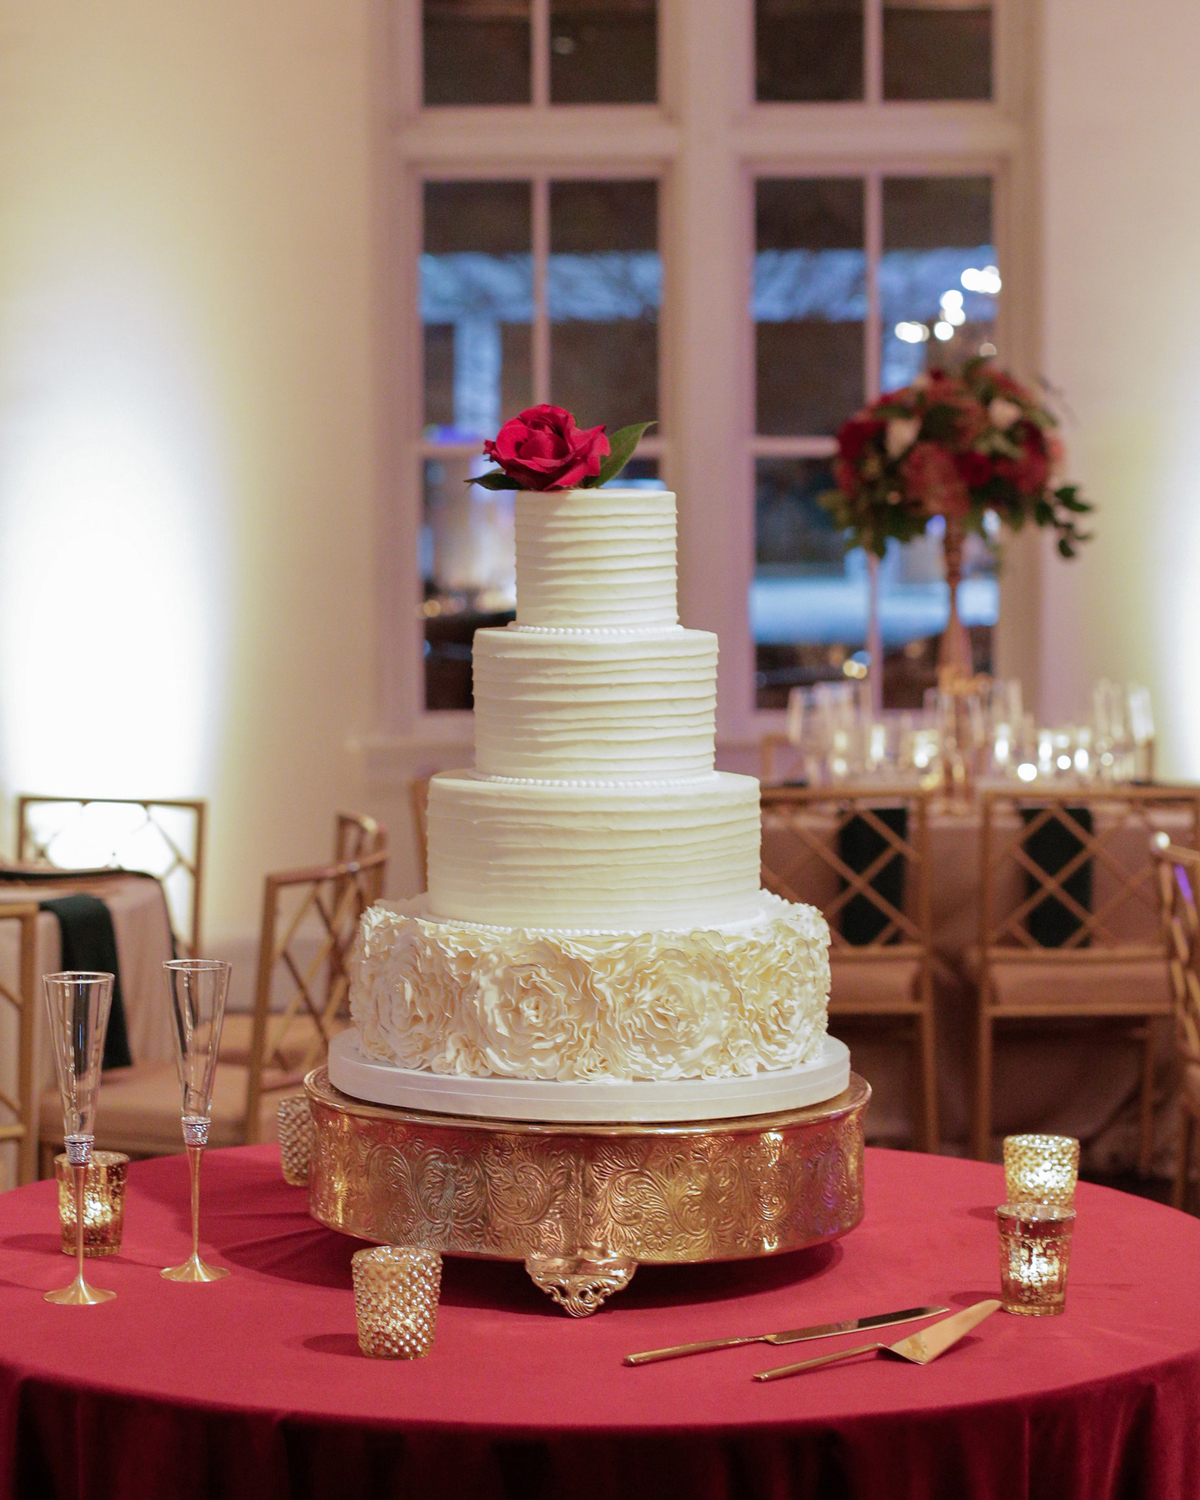 elizabeth seth wedding cake topped with a red rose